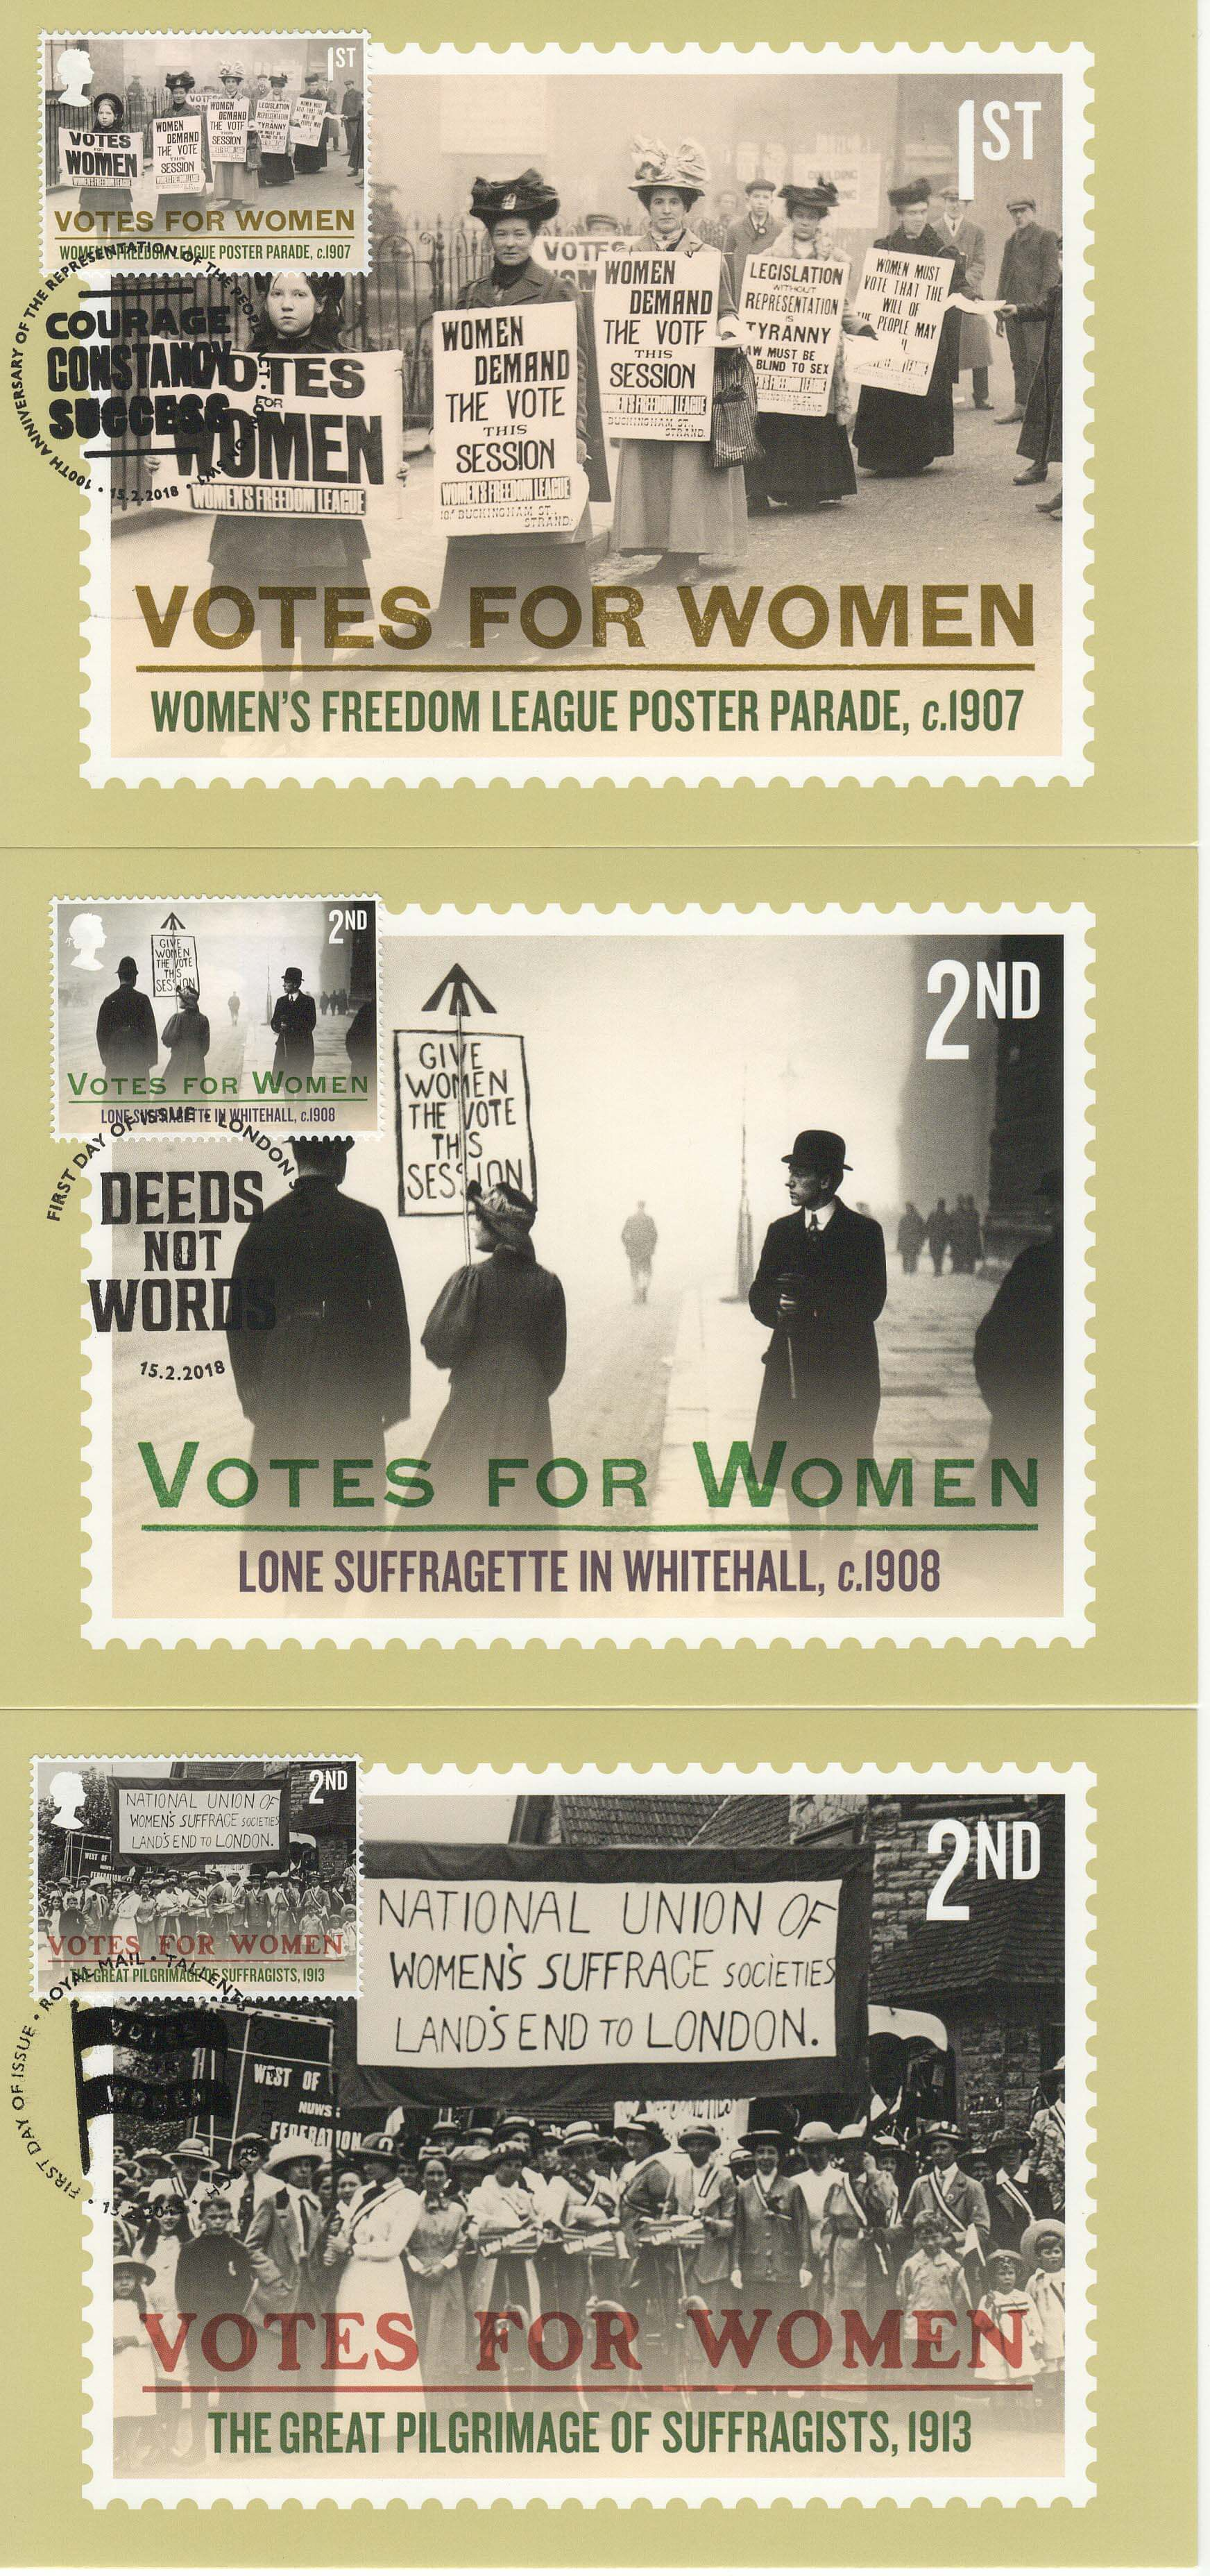 Votes for Women Stamp Cards 1st,2nd